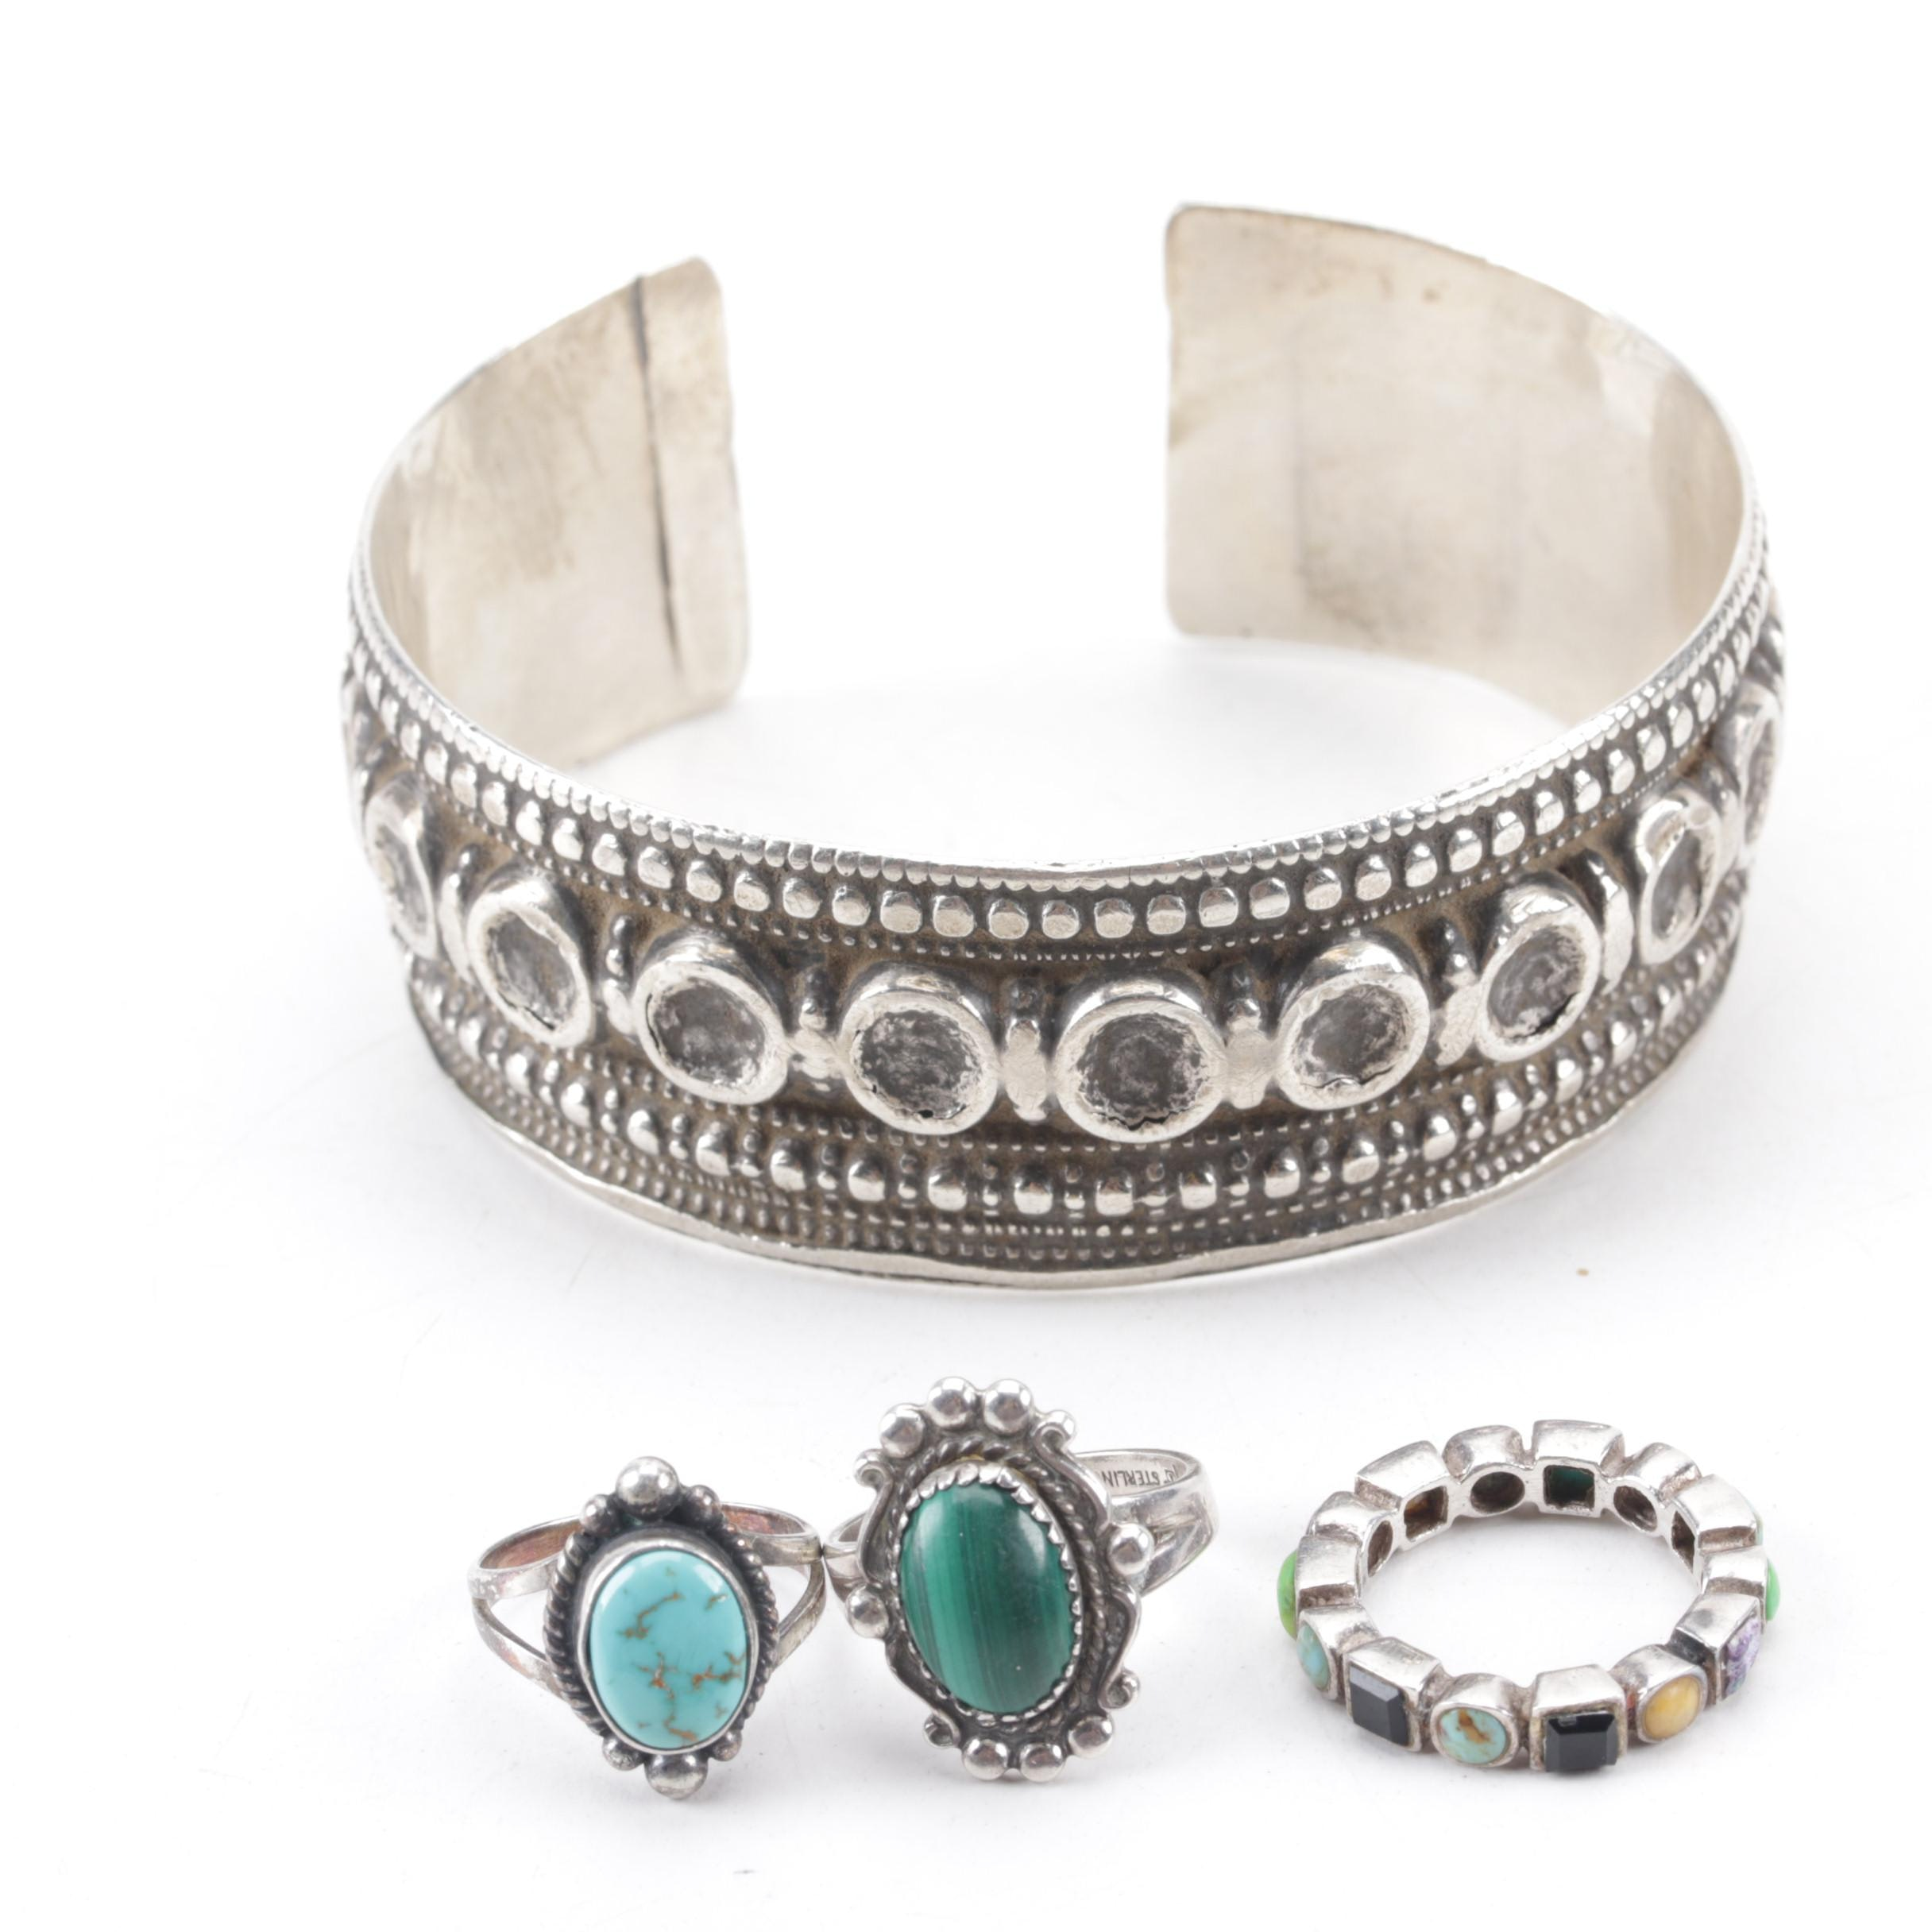 800 Silver Cuff Bracelet and Three Sterling Silver Rings Set with Mixed Stones